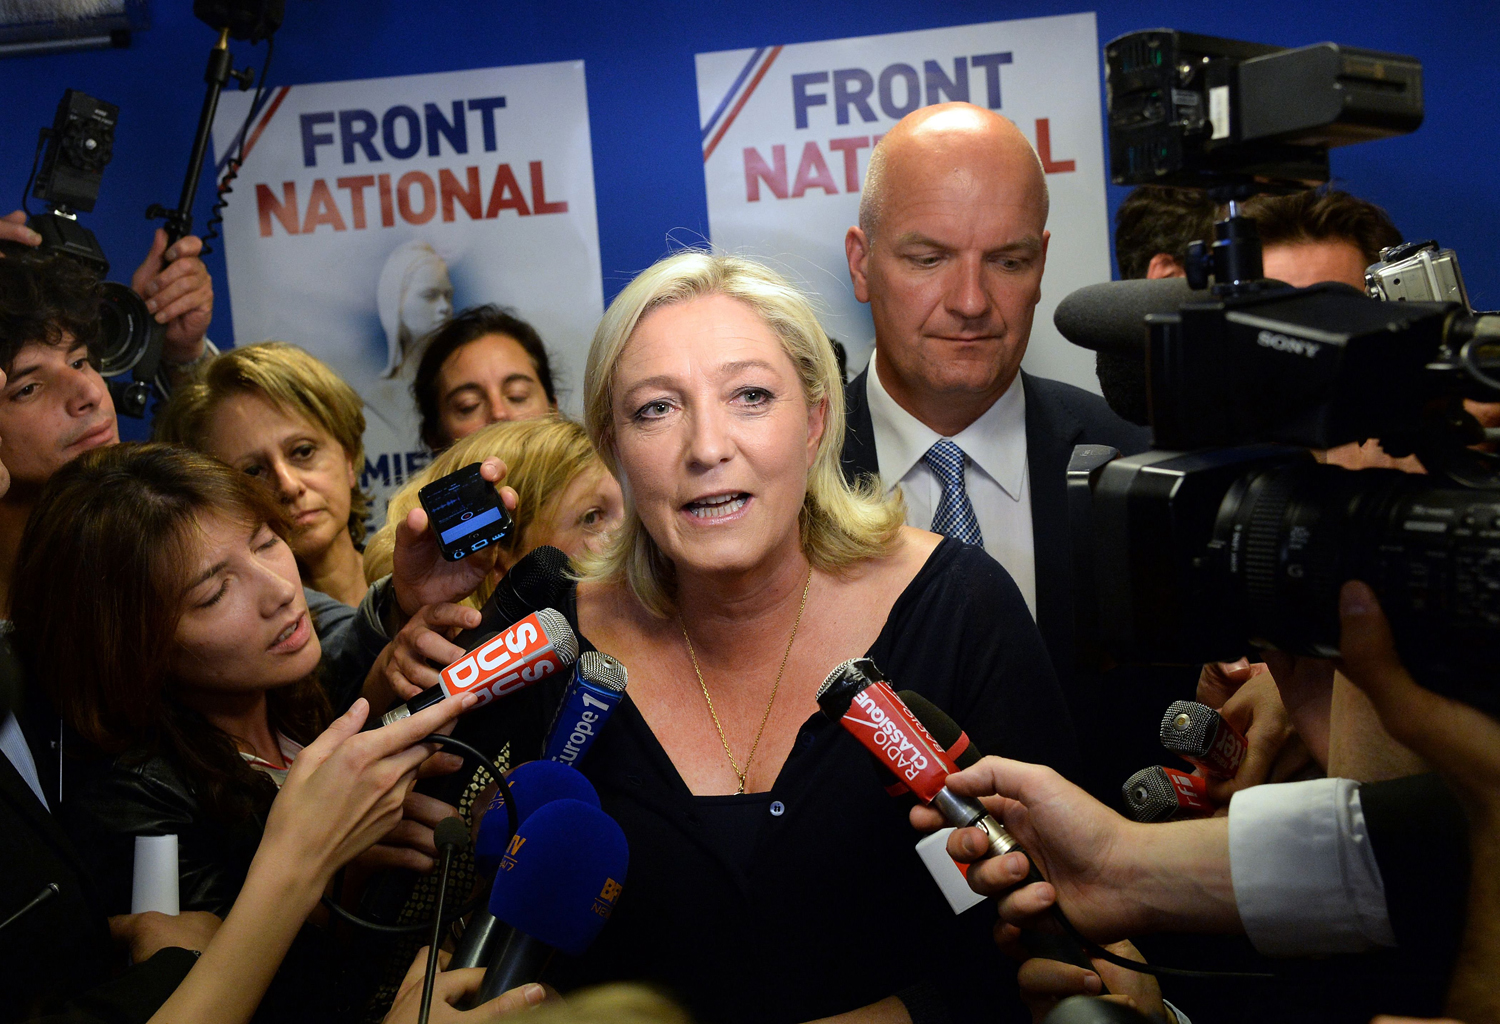 French far-right National Front party president Marine Le Pen reacts at the party's headquarters in Nanterre, outside Paris, on May 25, 2014.